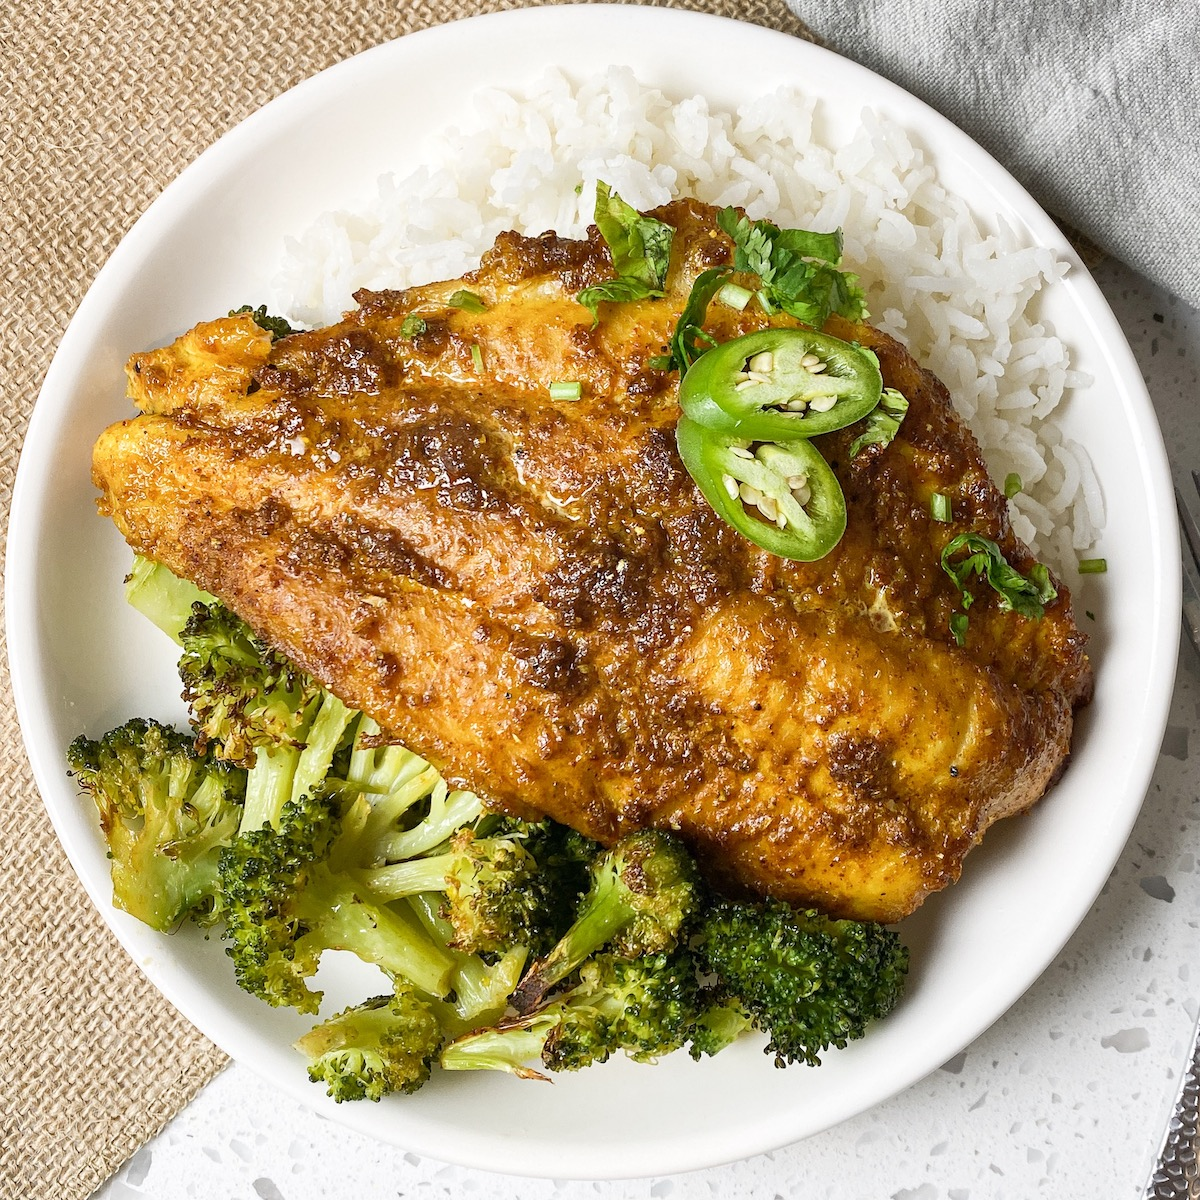 a round bowl with rice, cooked broccoli, and a oven baked indian catfish